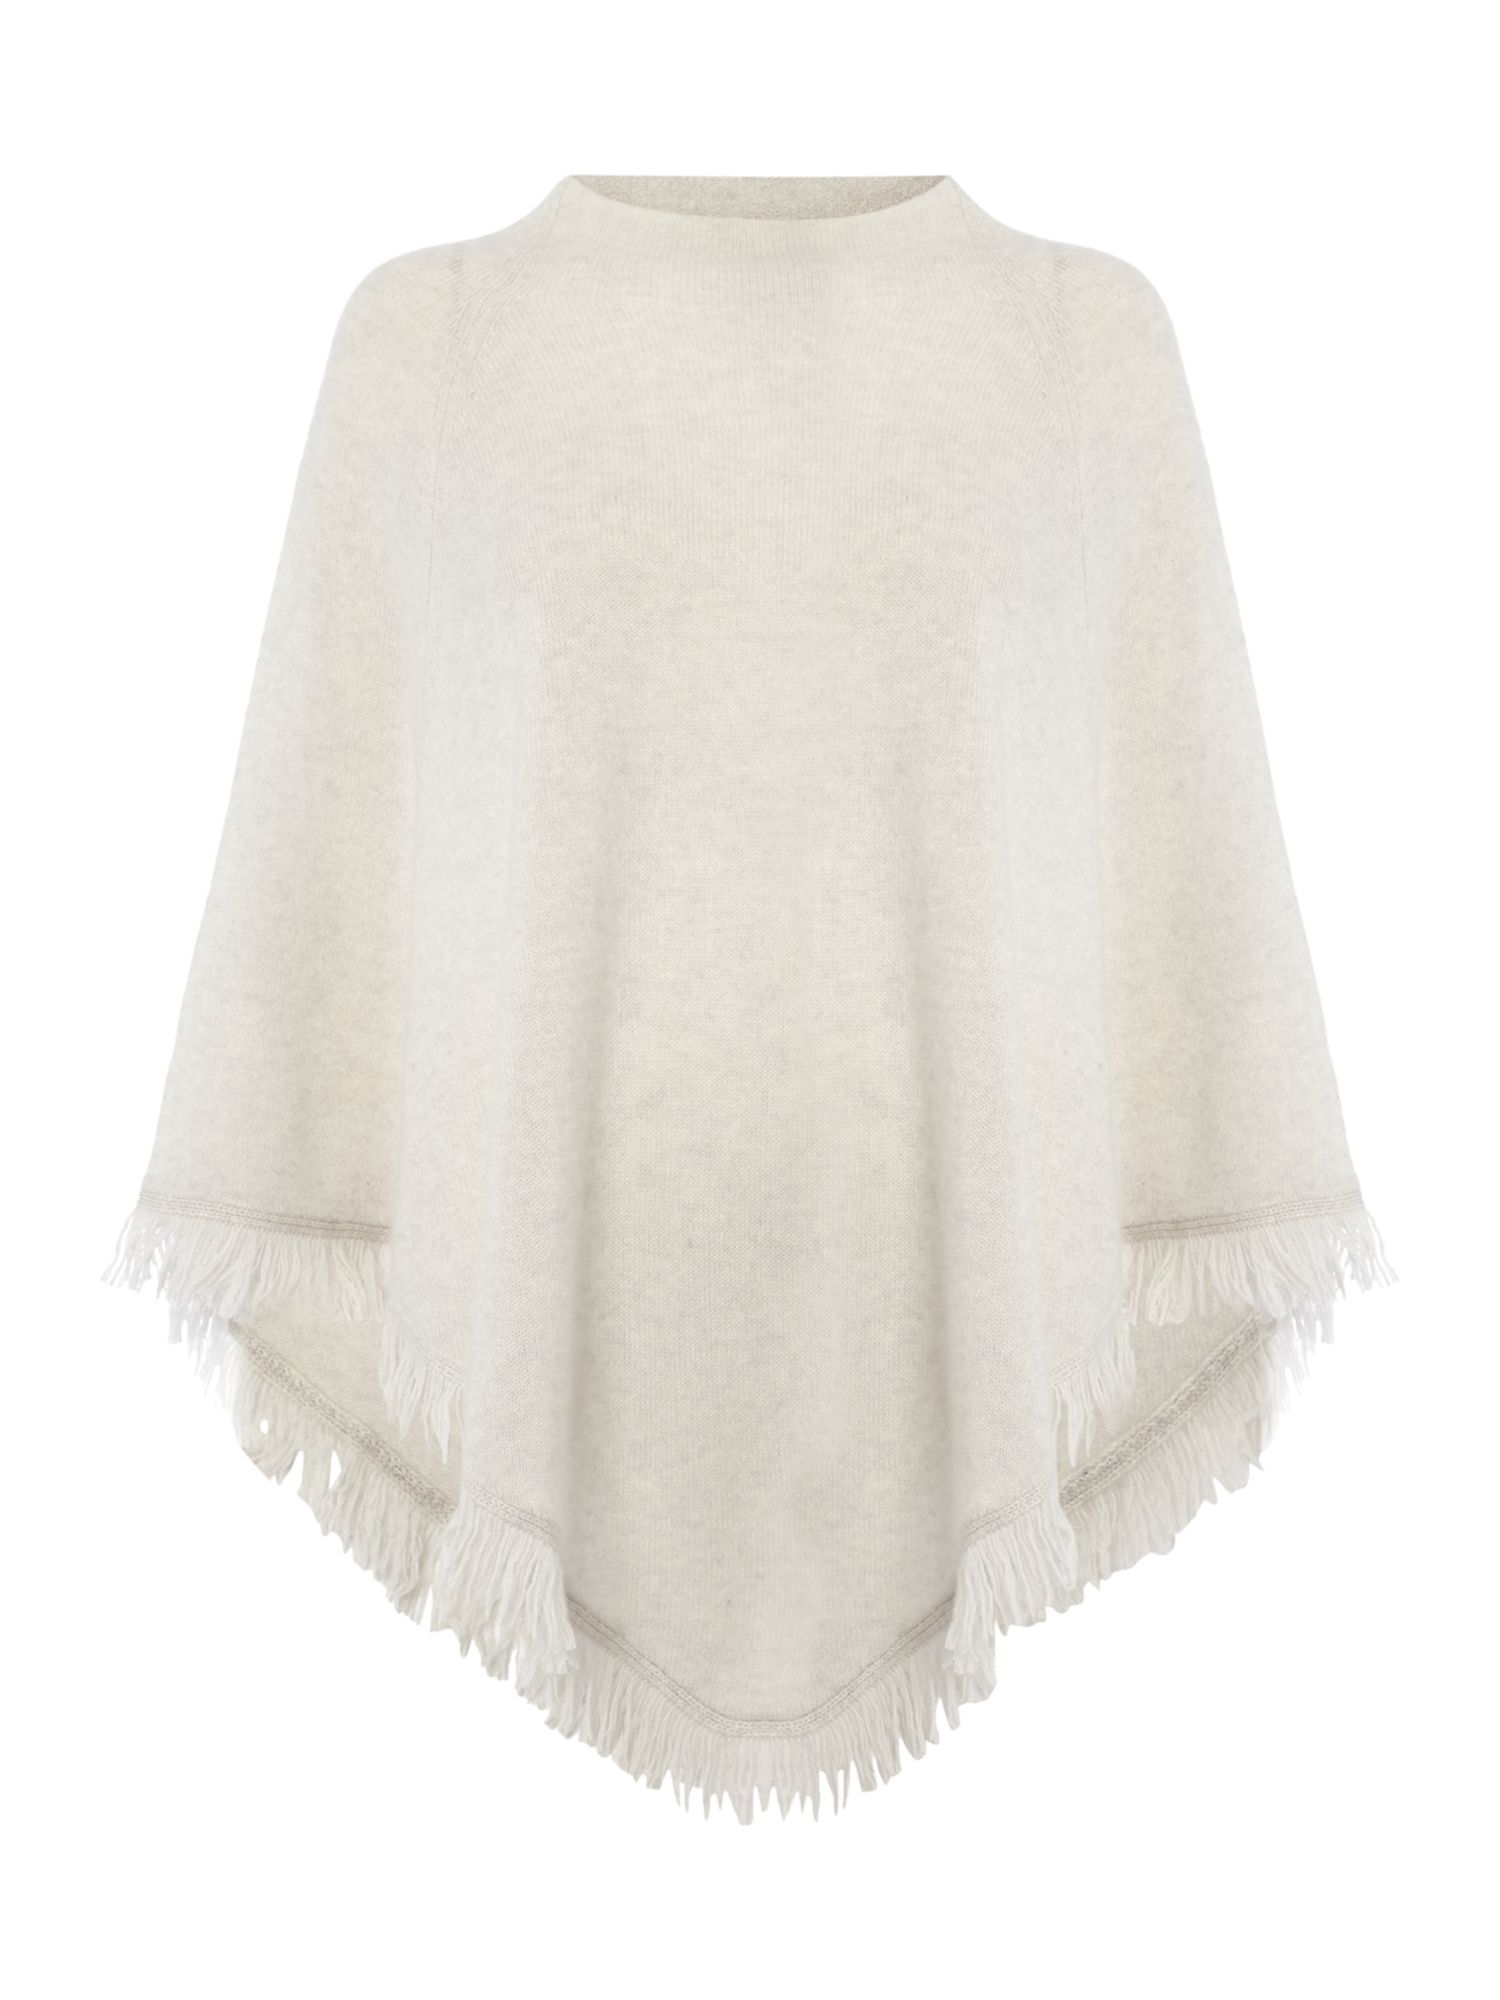 Repeat Cashmere Repeat Cashmere Fringed poncho, White